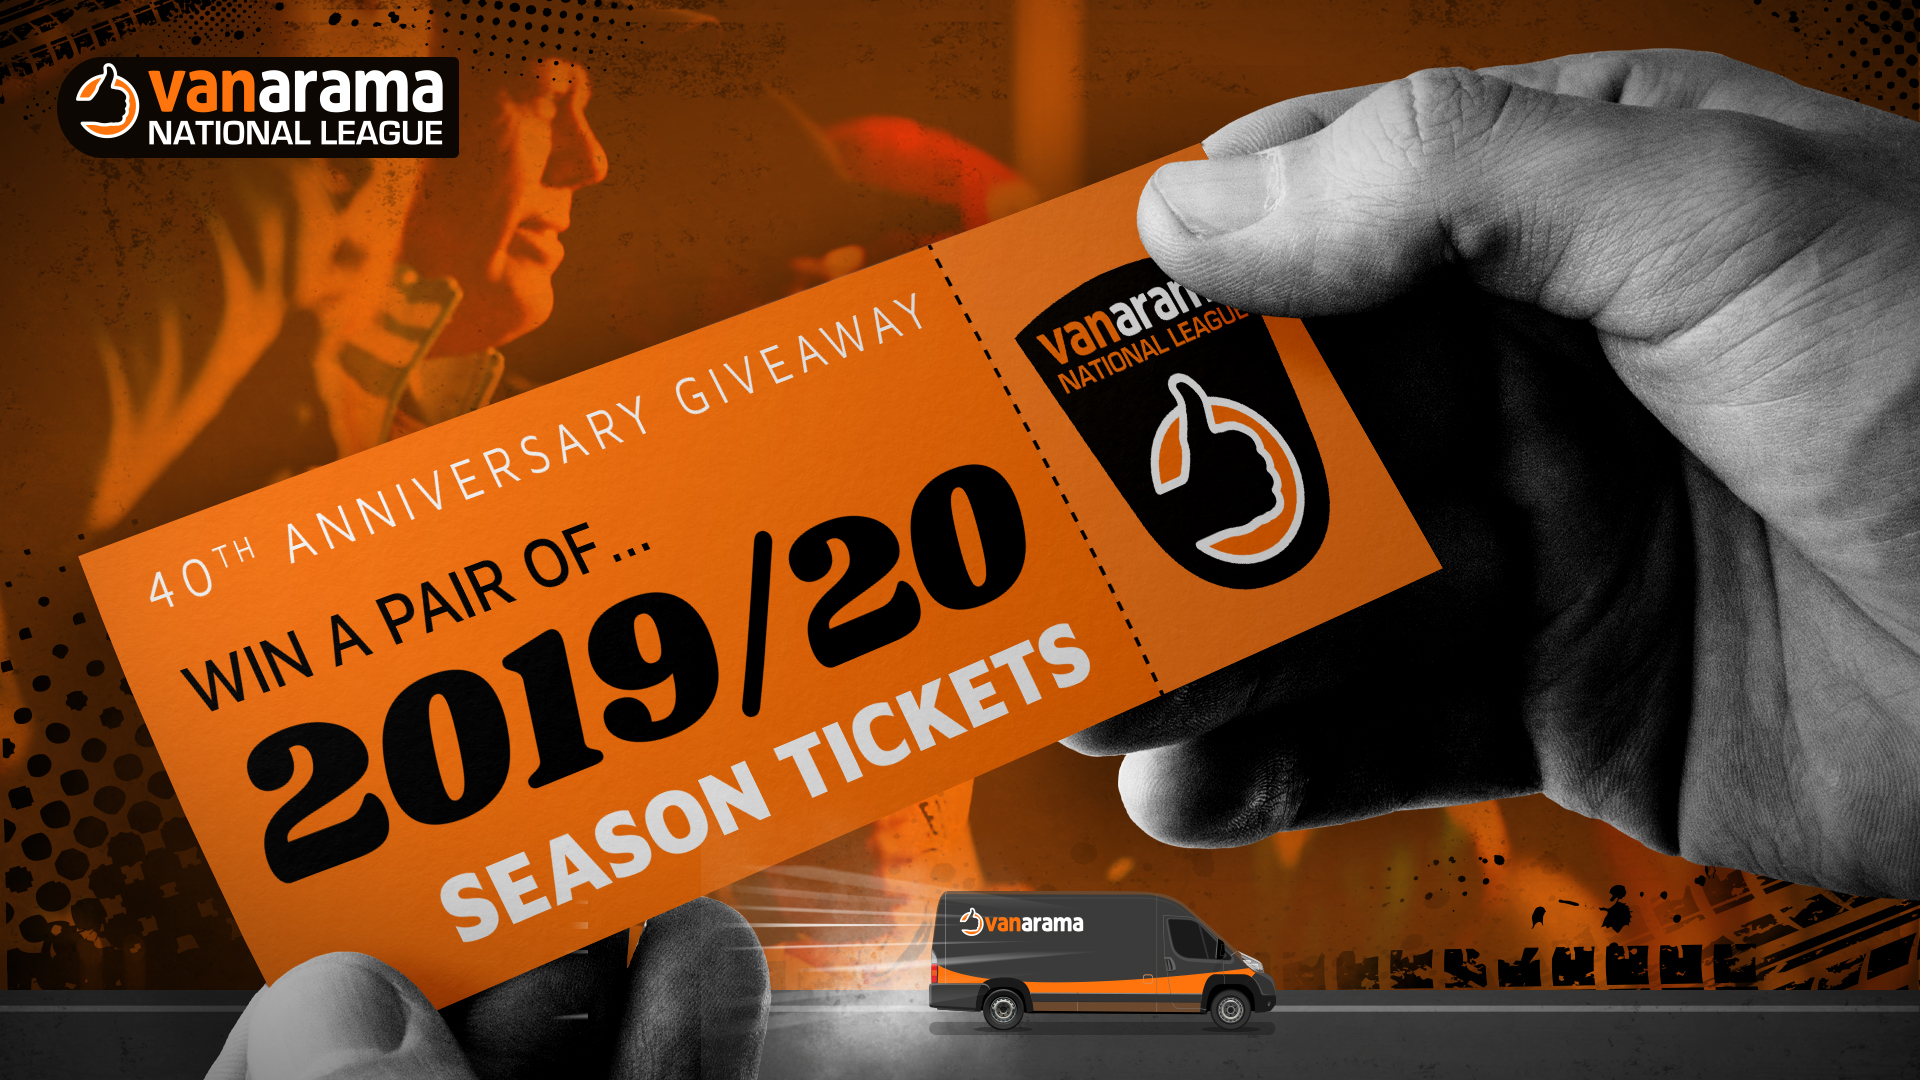 The 40th Anniversary Season Ticket Giveaway